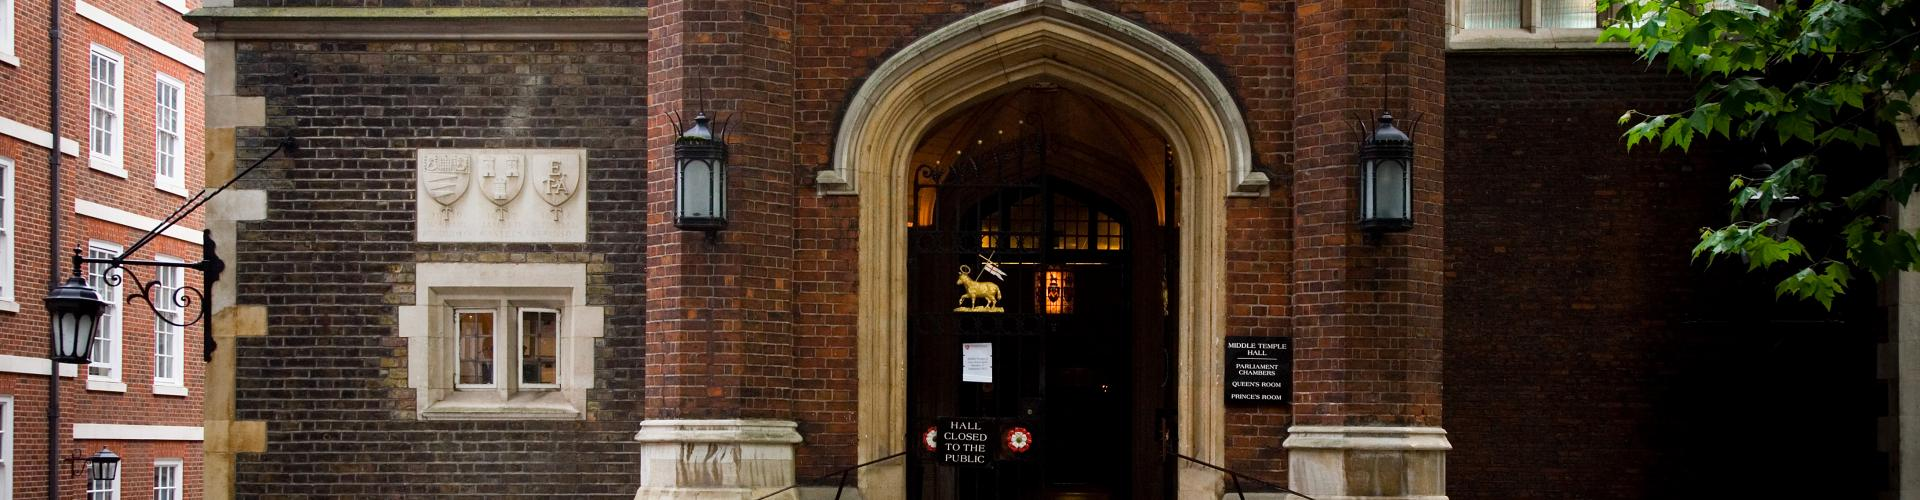 Middle Temple exterior